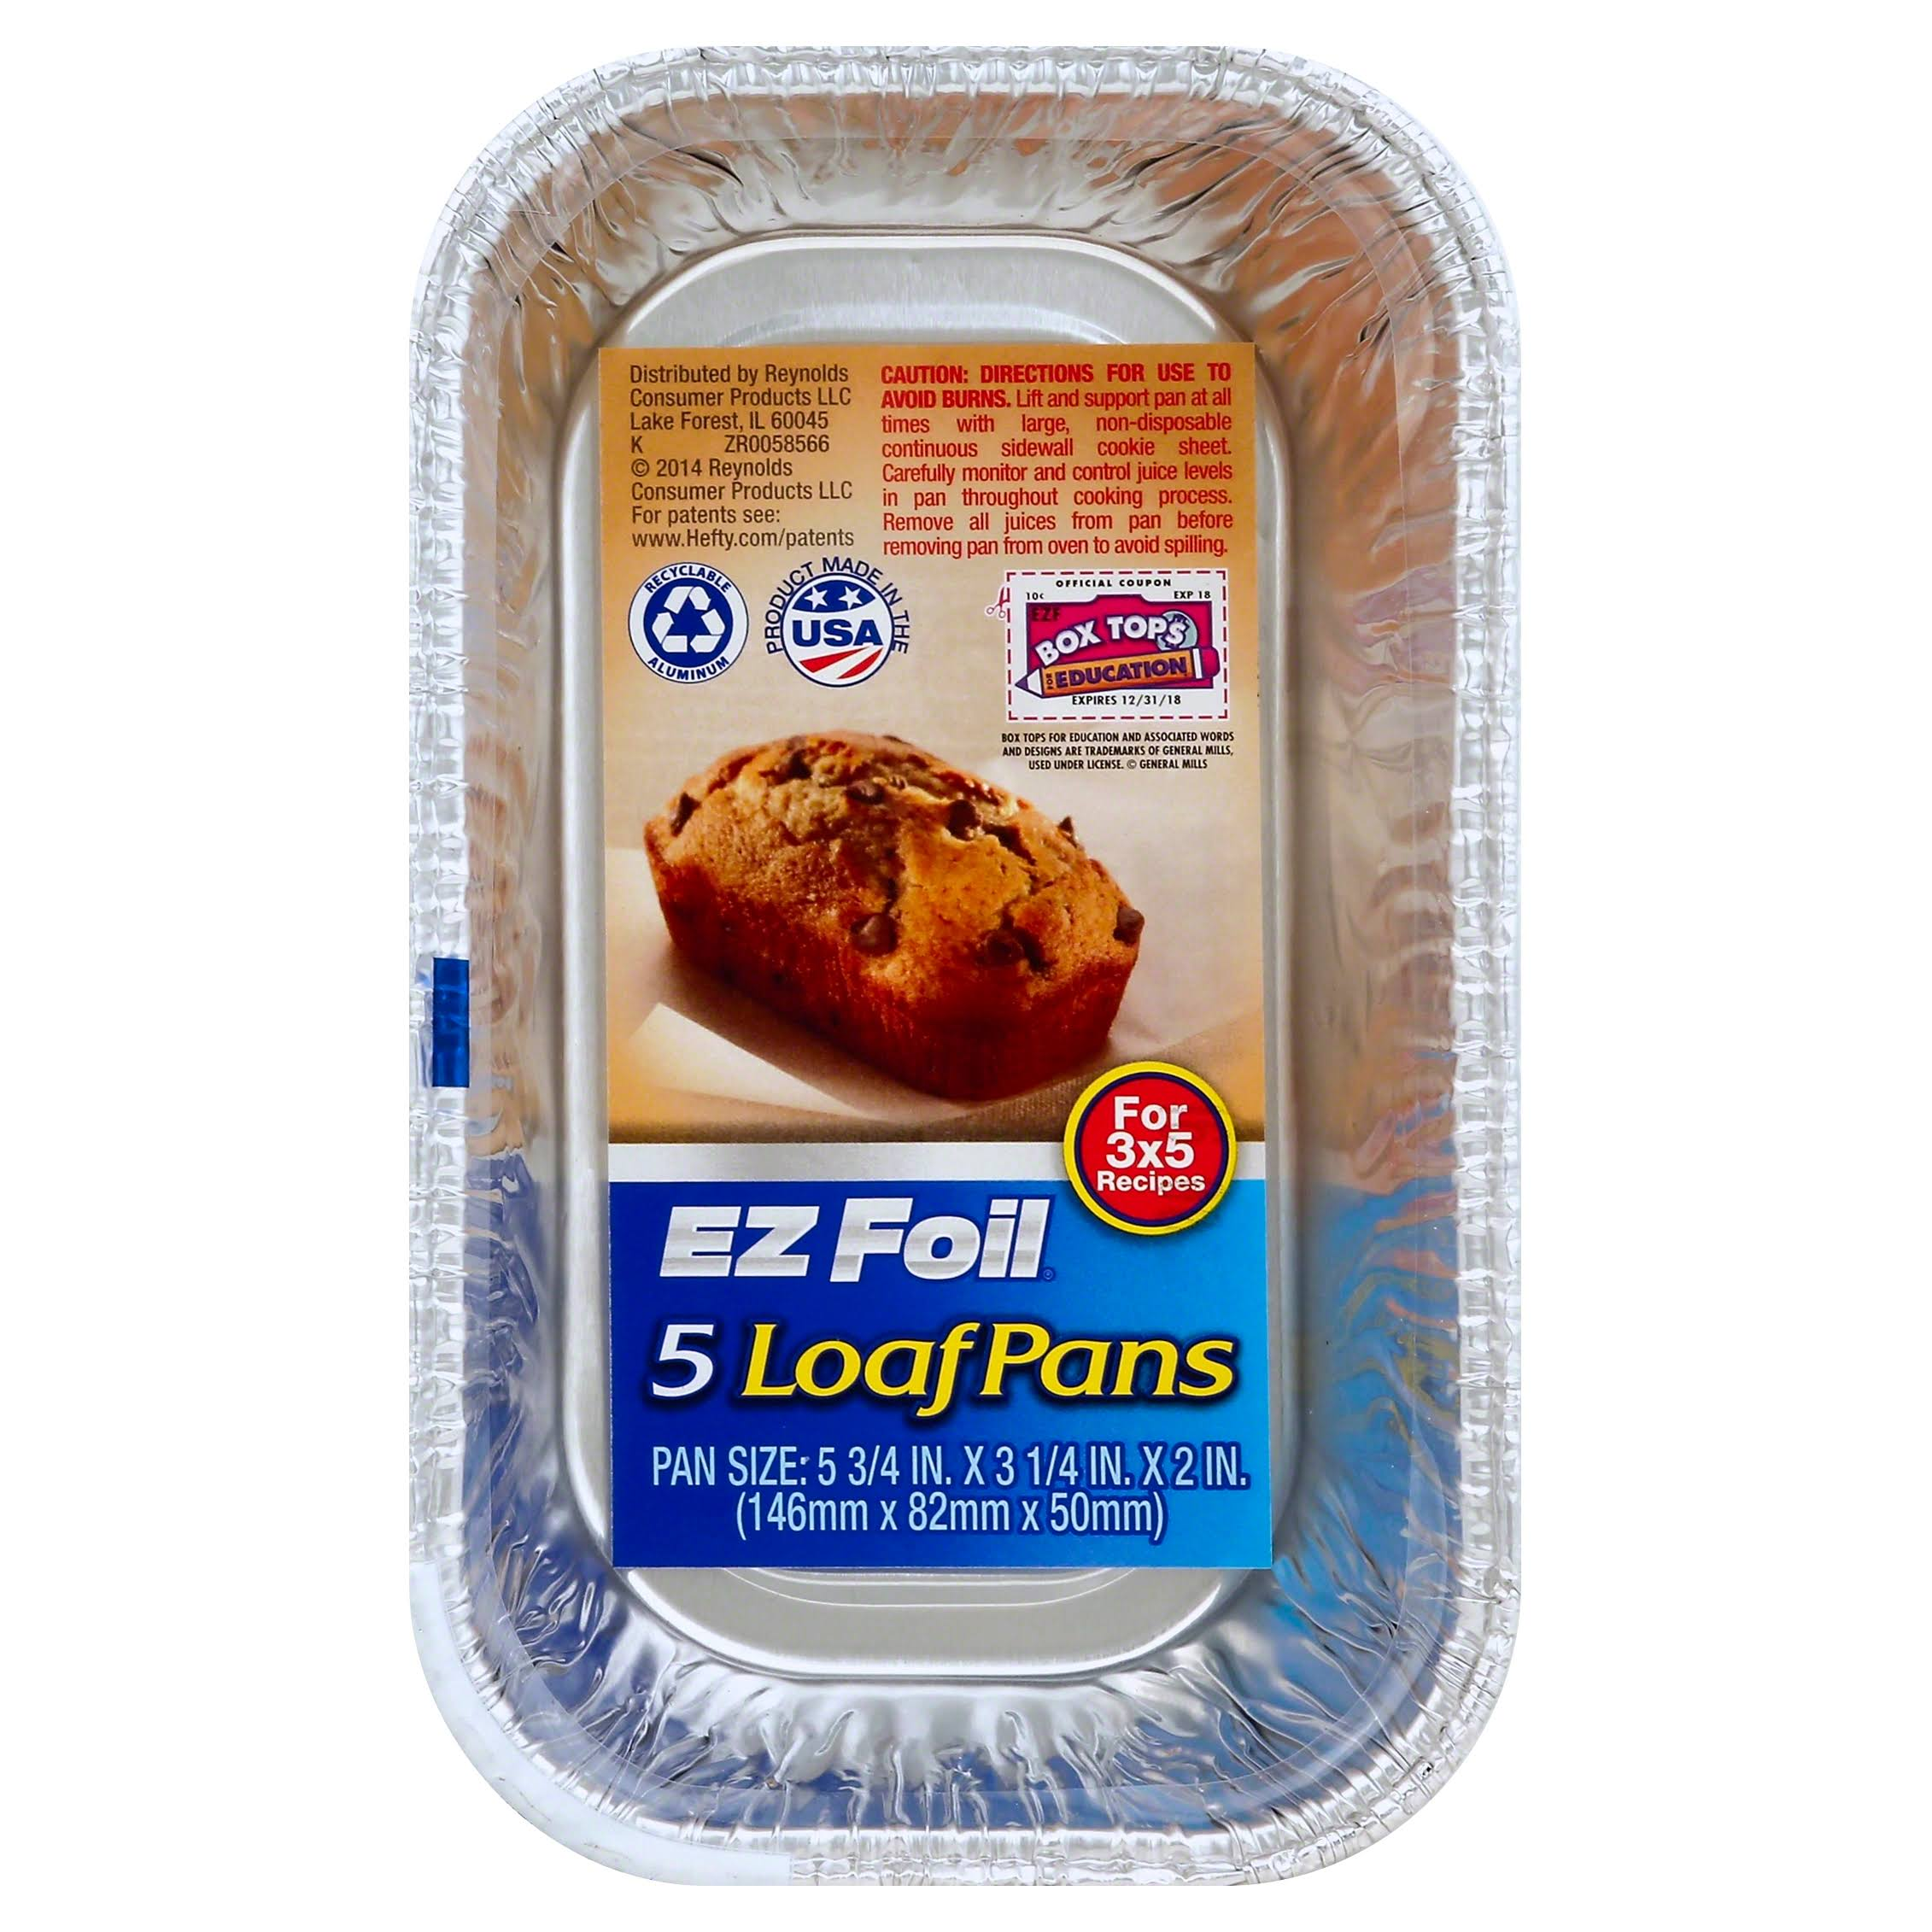 Hefty Ez Foil Loaf Pan - x5